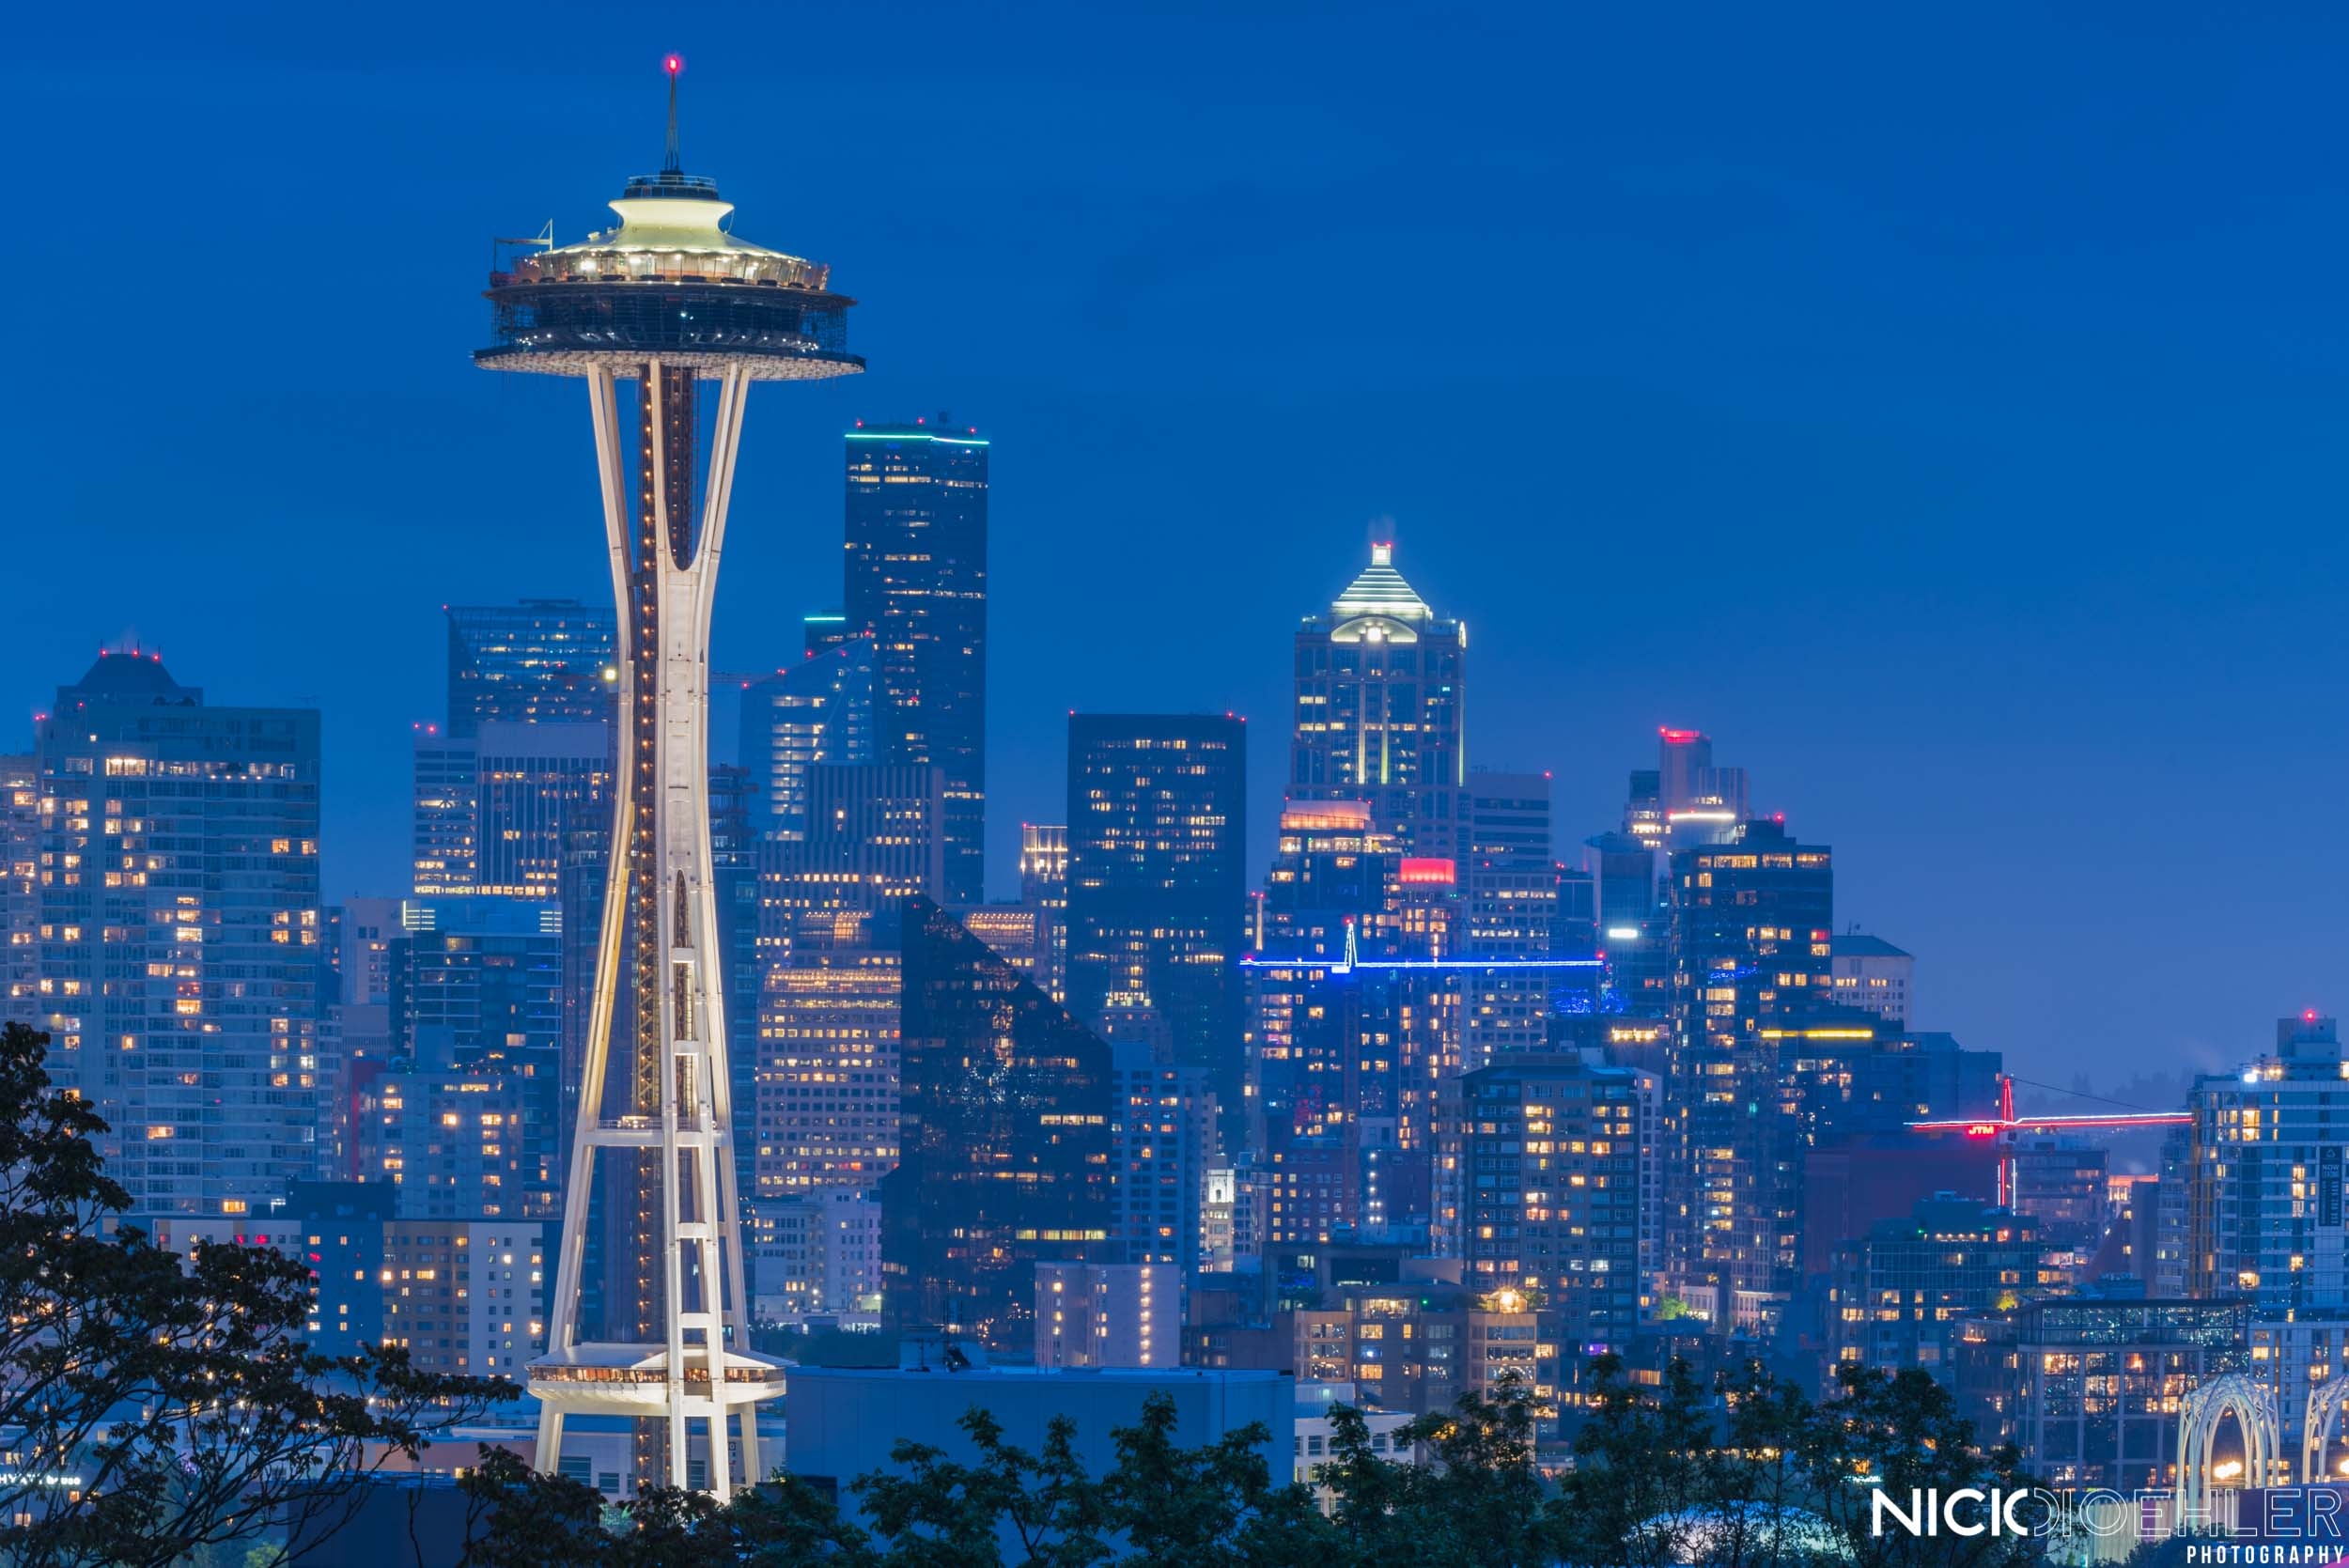 Seattle, Washington: The space needle with the blue city behind it.